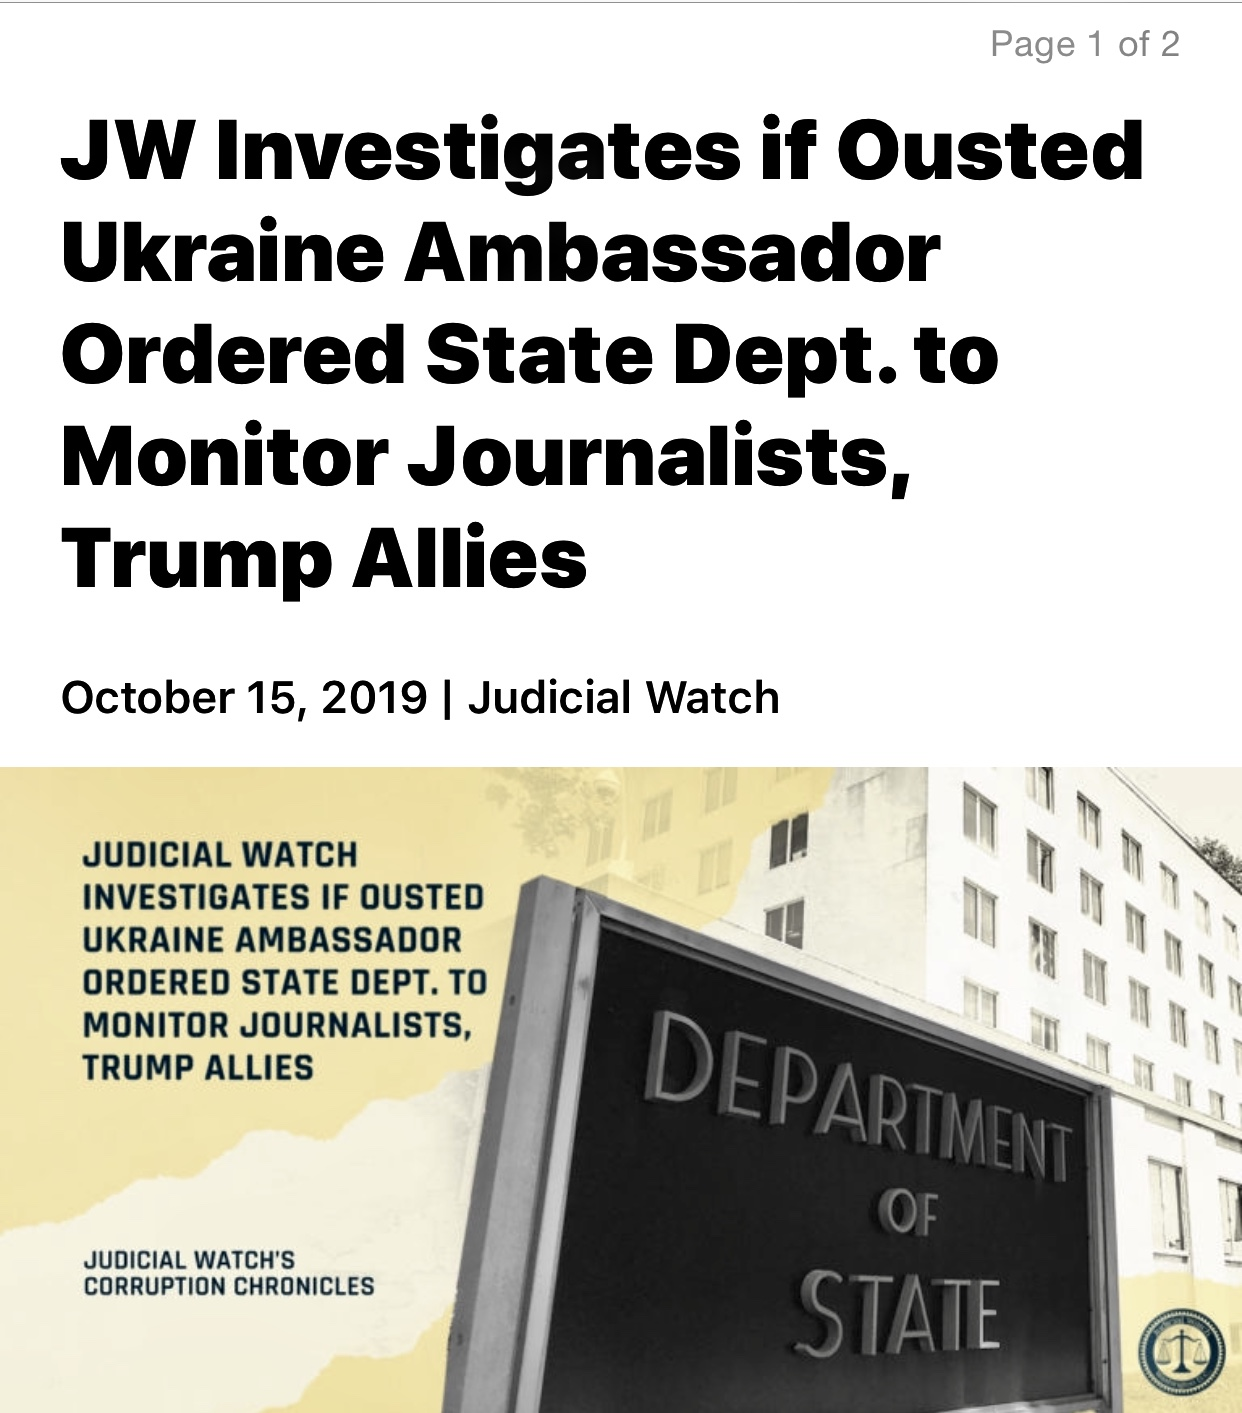 JW Investigates Ousted Ukraine Ambassador Ordered State Dept. to Monitor Journalists